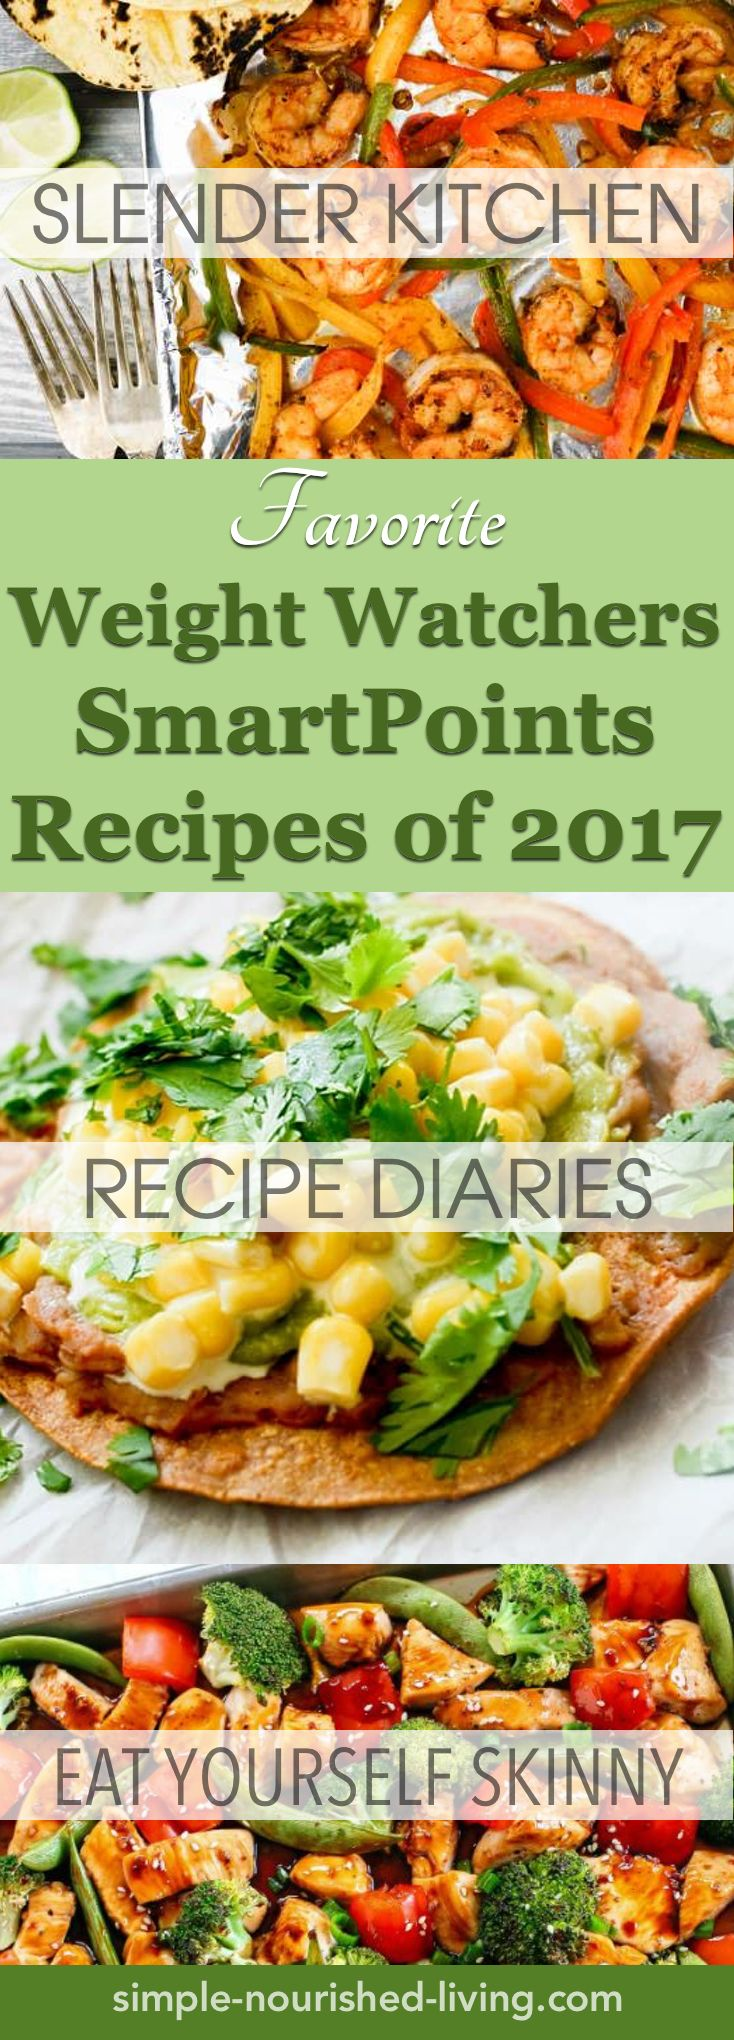 Best smartpoints recipes of 2017 from my favorite ww recipe sites best smartpoints recipes of 2017 from my favorite ww recipe sites comidas sanas comida y recetas forumfinder Images